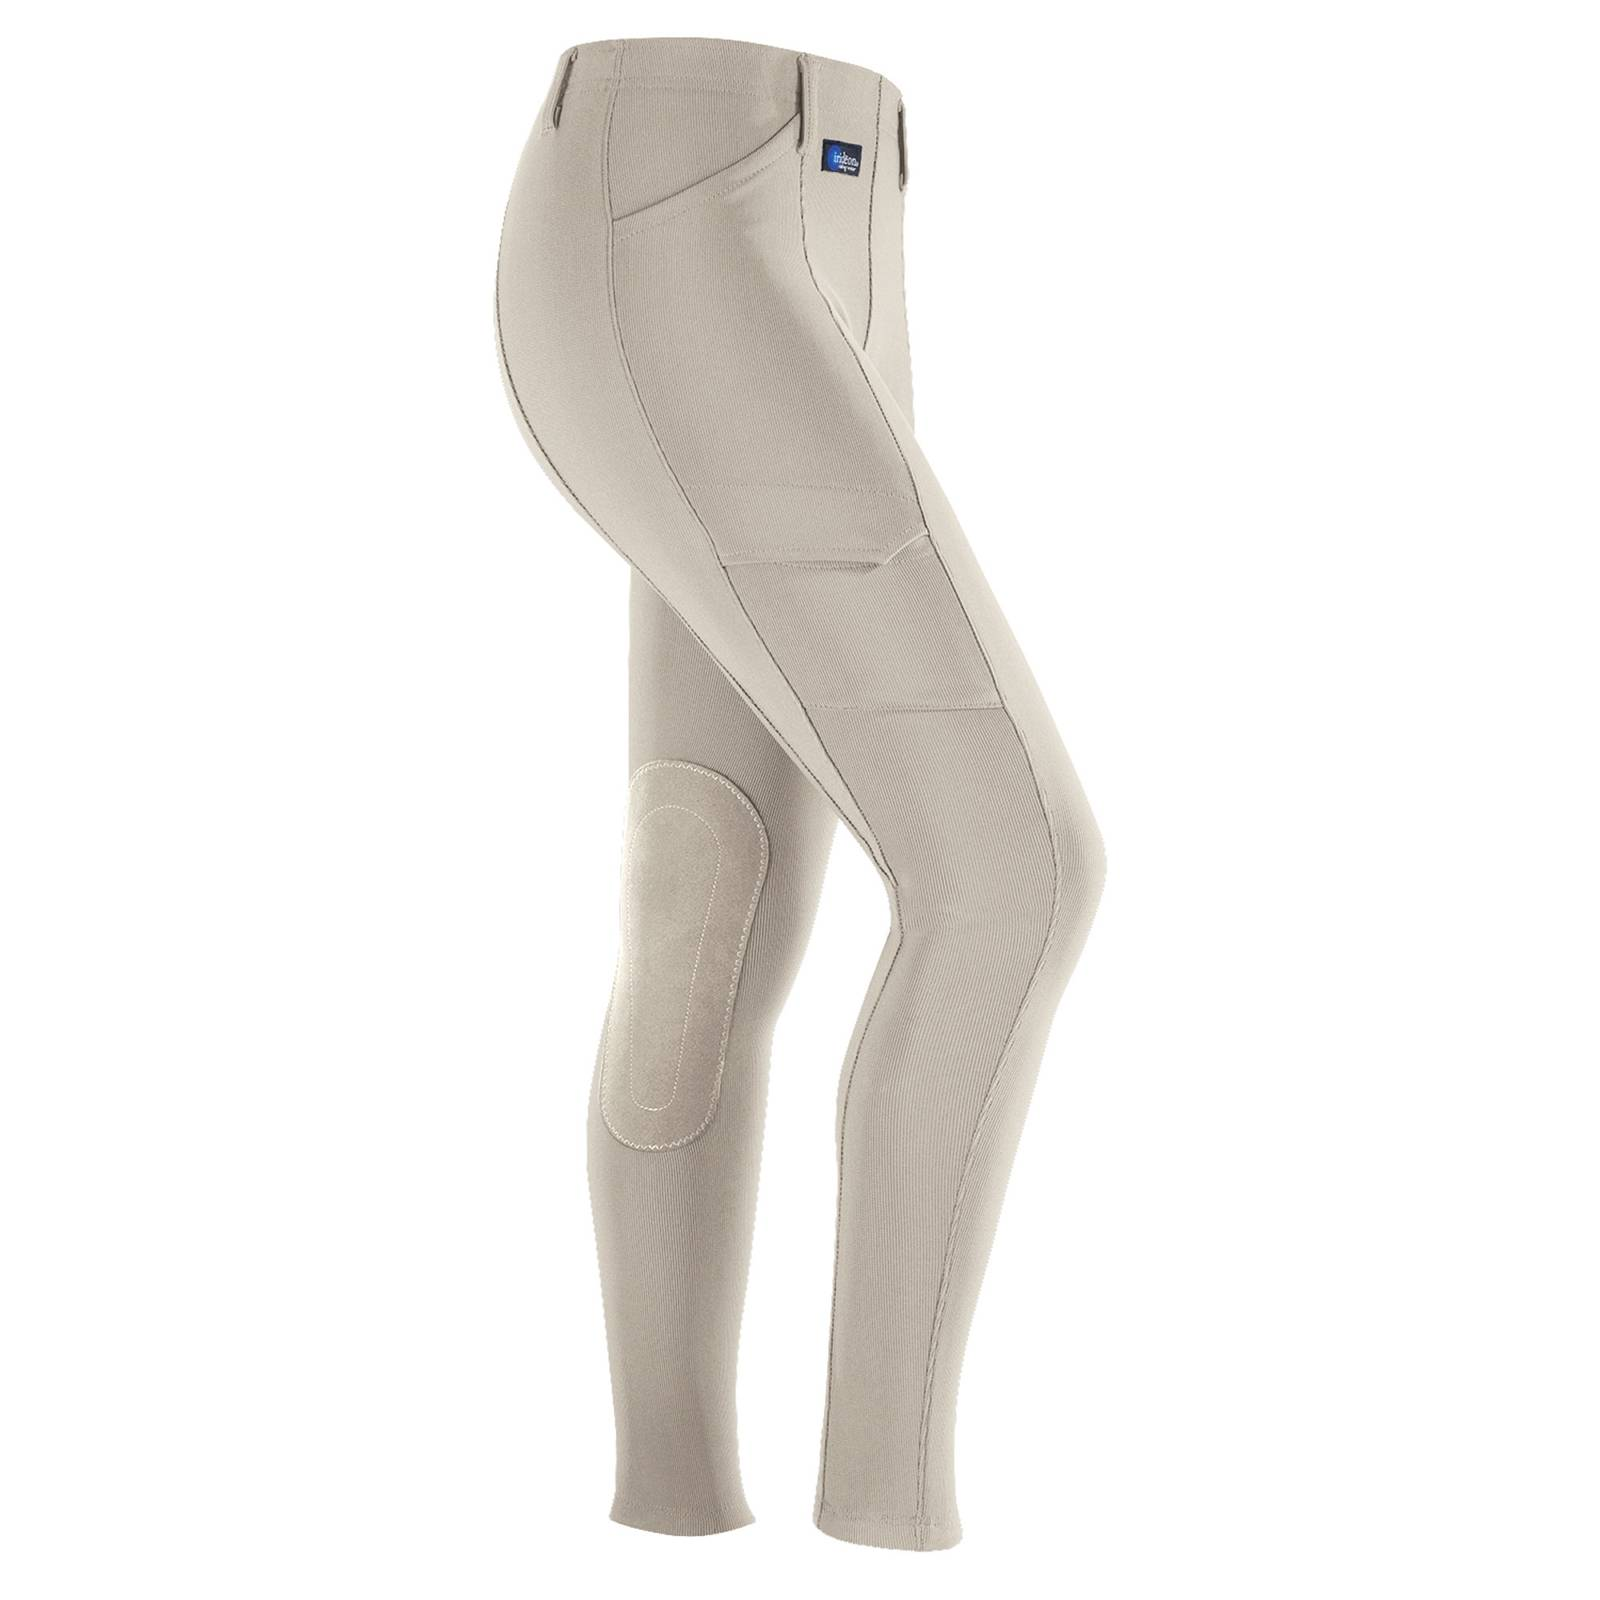 Irideon Cadence Cargo Breeches - Kids, Knee Patch